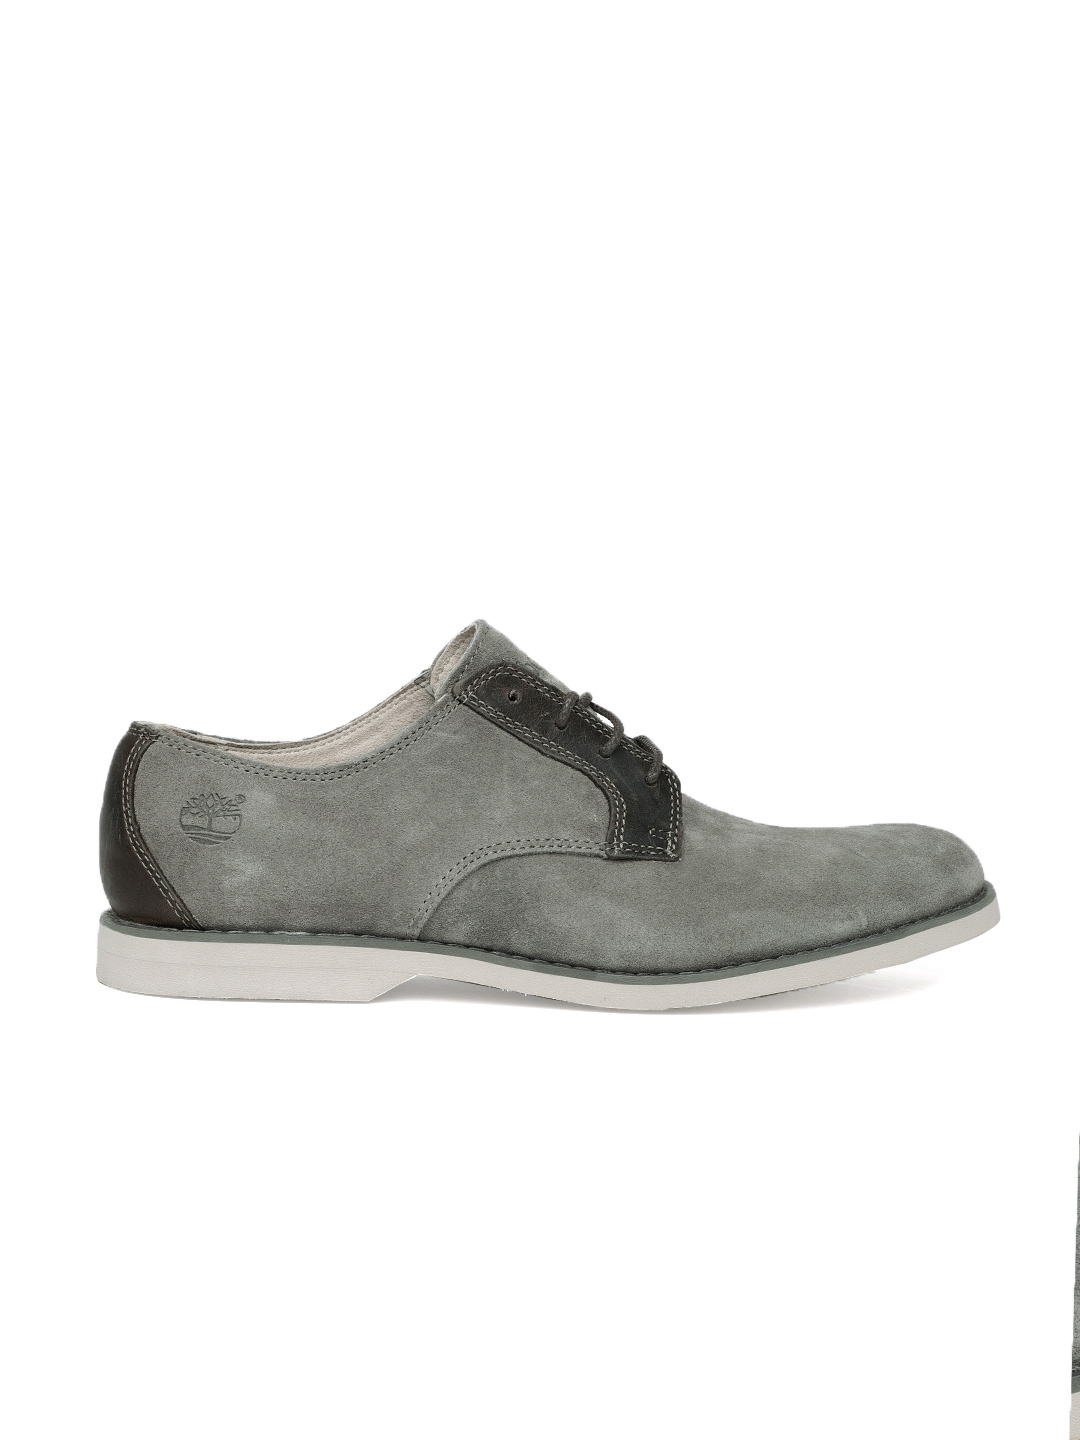 d54deebcc22f Buy Timberland Men Grey STORMLT VL Leather Sneakers - Casual Shoes ...